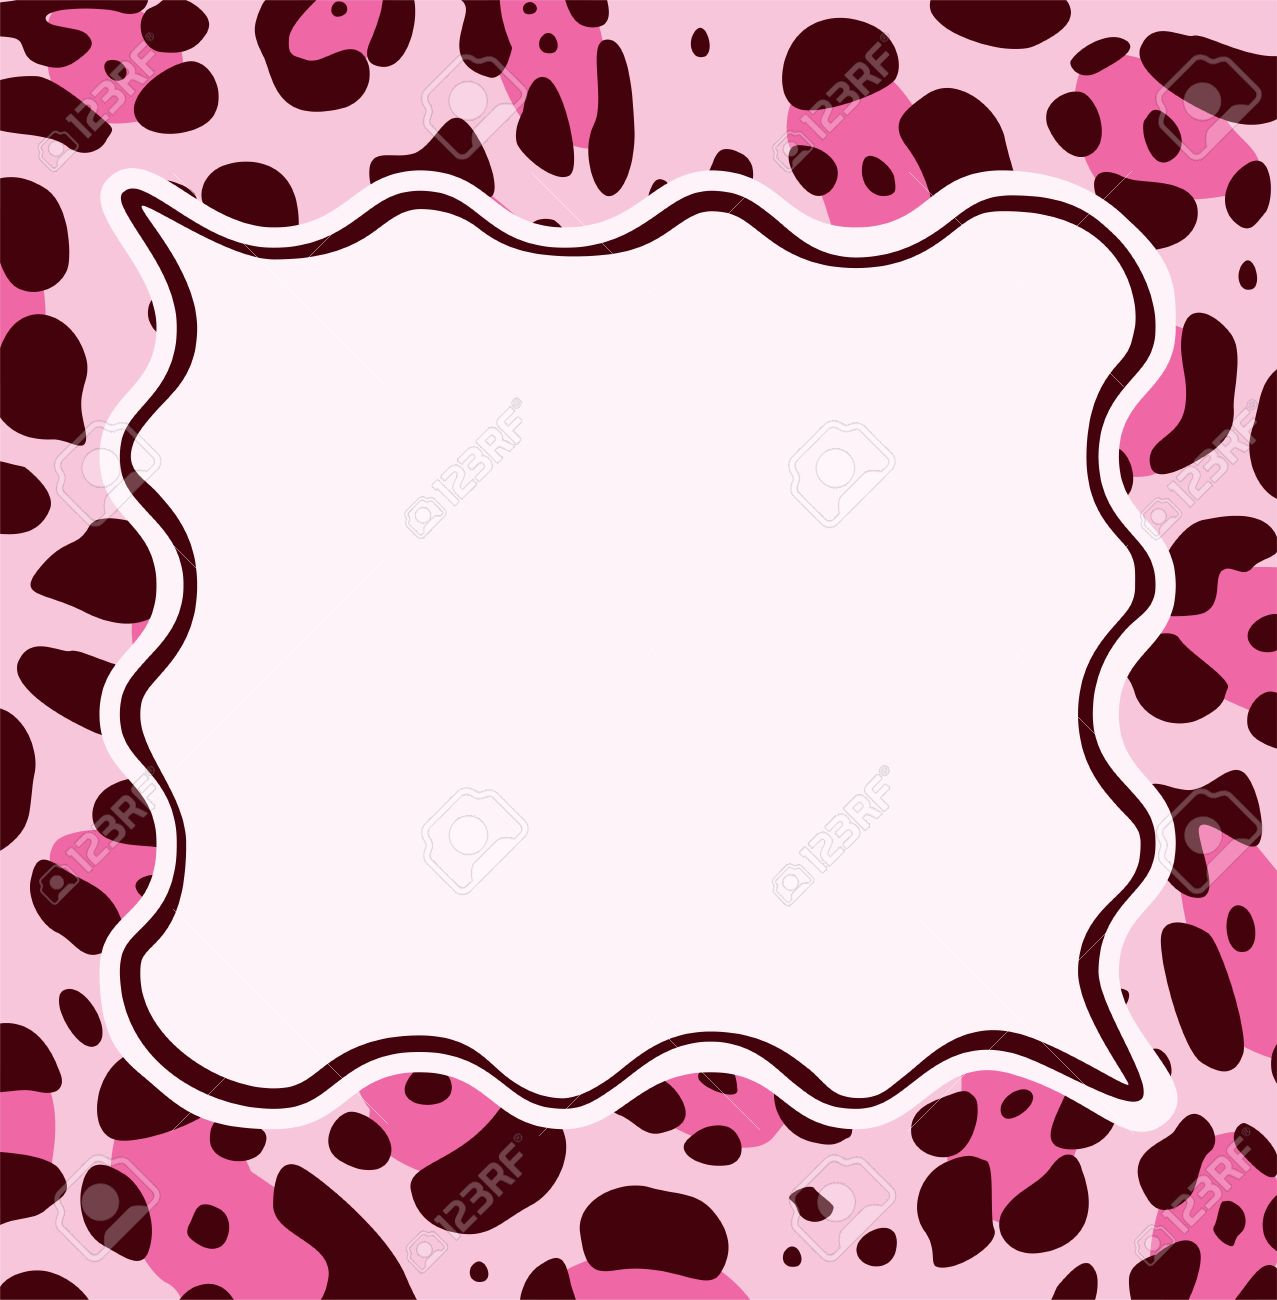 vector frame with abstract leopard skin texture and copy space rh 123rf com leopard paw print clip art pink leopard print clipart